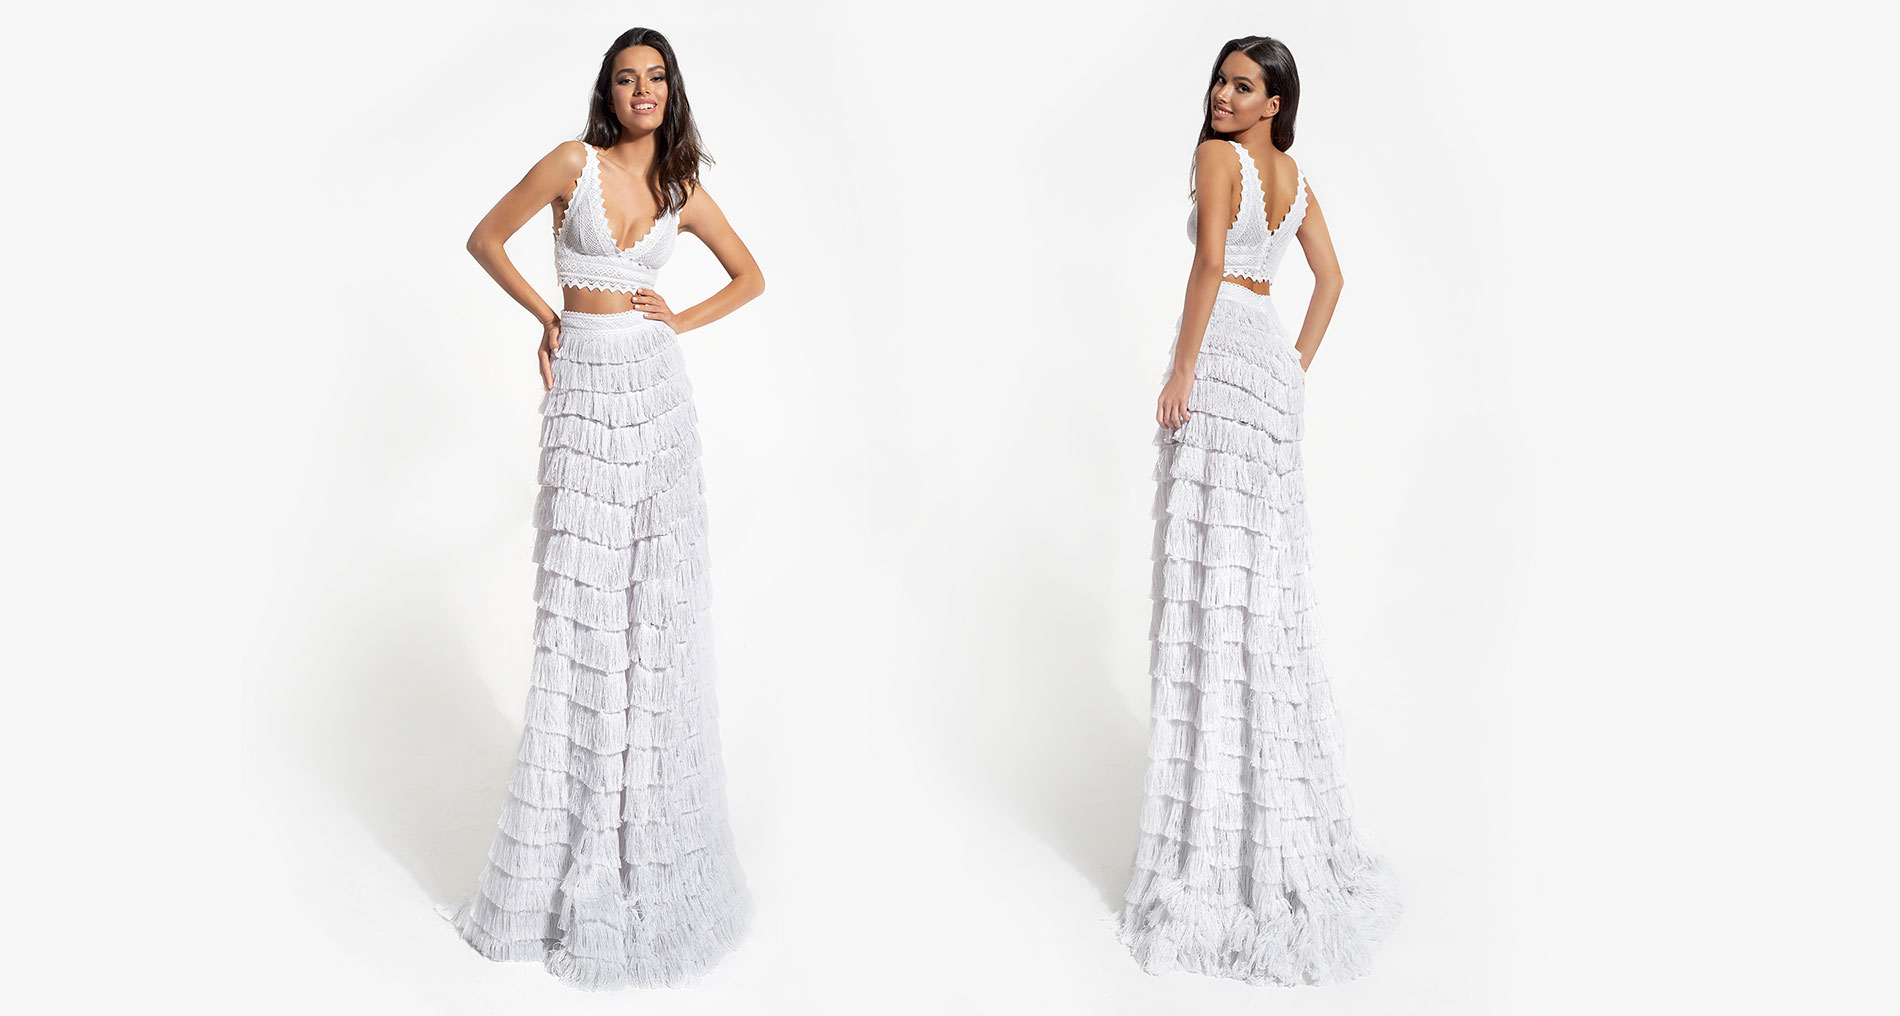 Soleia & Iovi wedding dress from  Hellenic Vintage White Collection